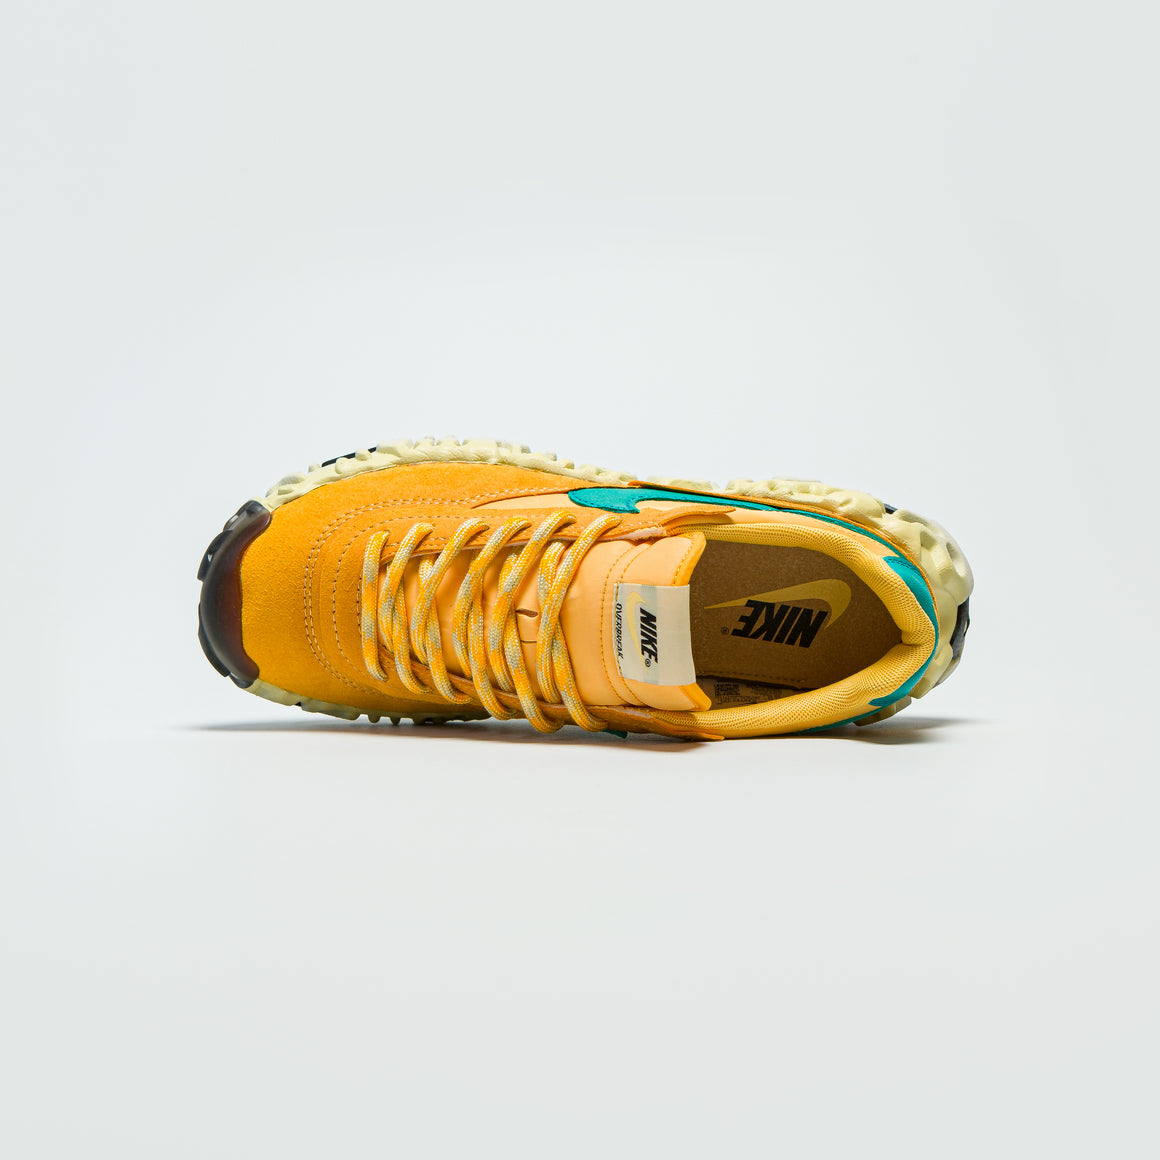 Nike - Overbreak SP - Pollen Rise/Neptune Green - Up There